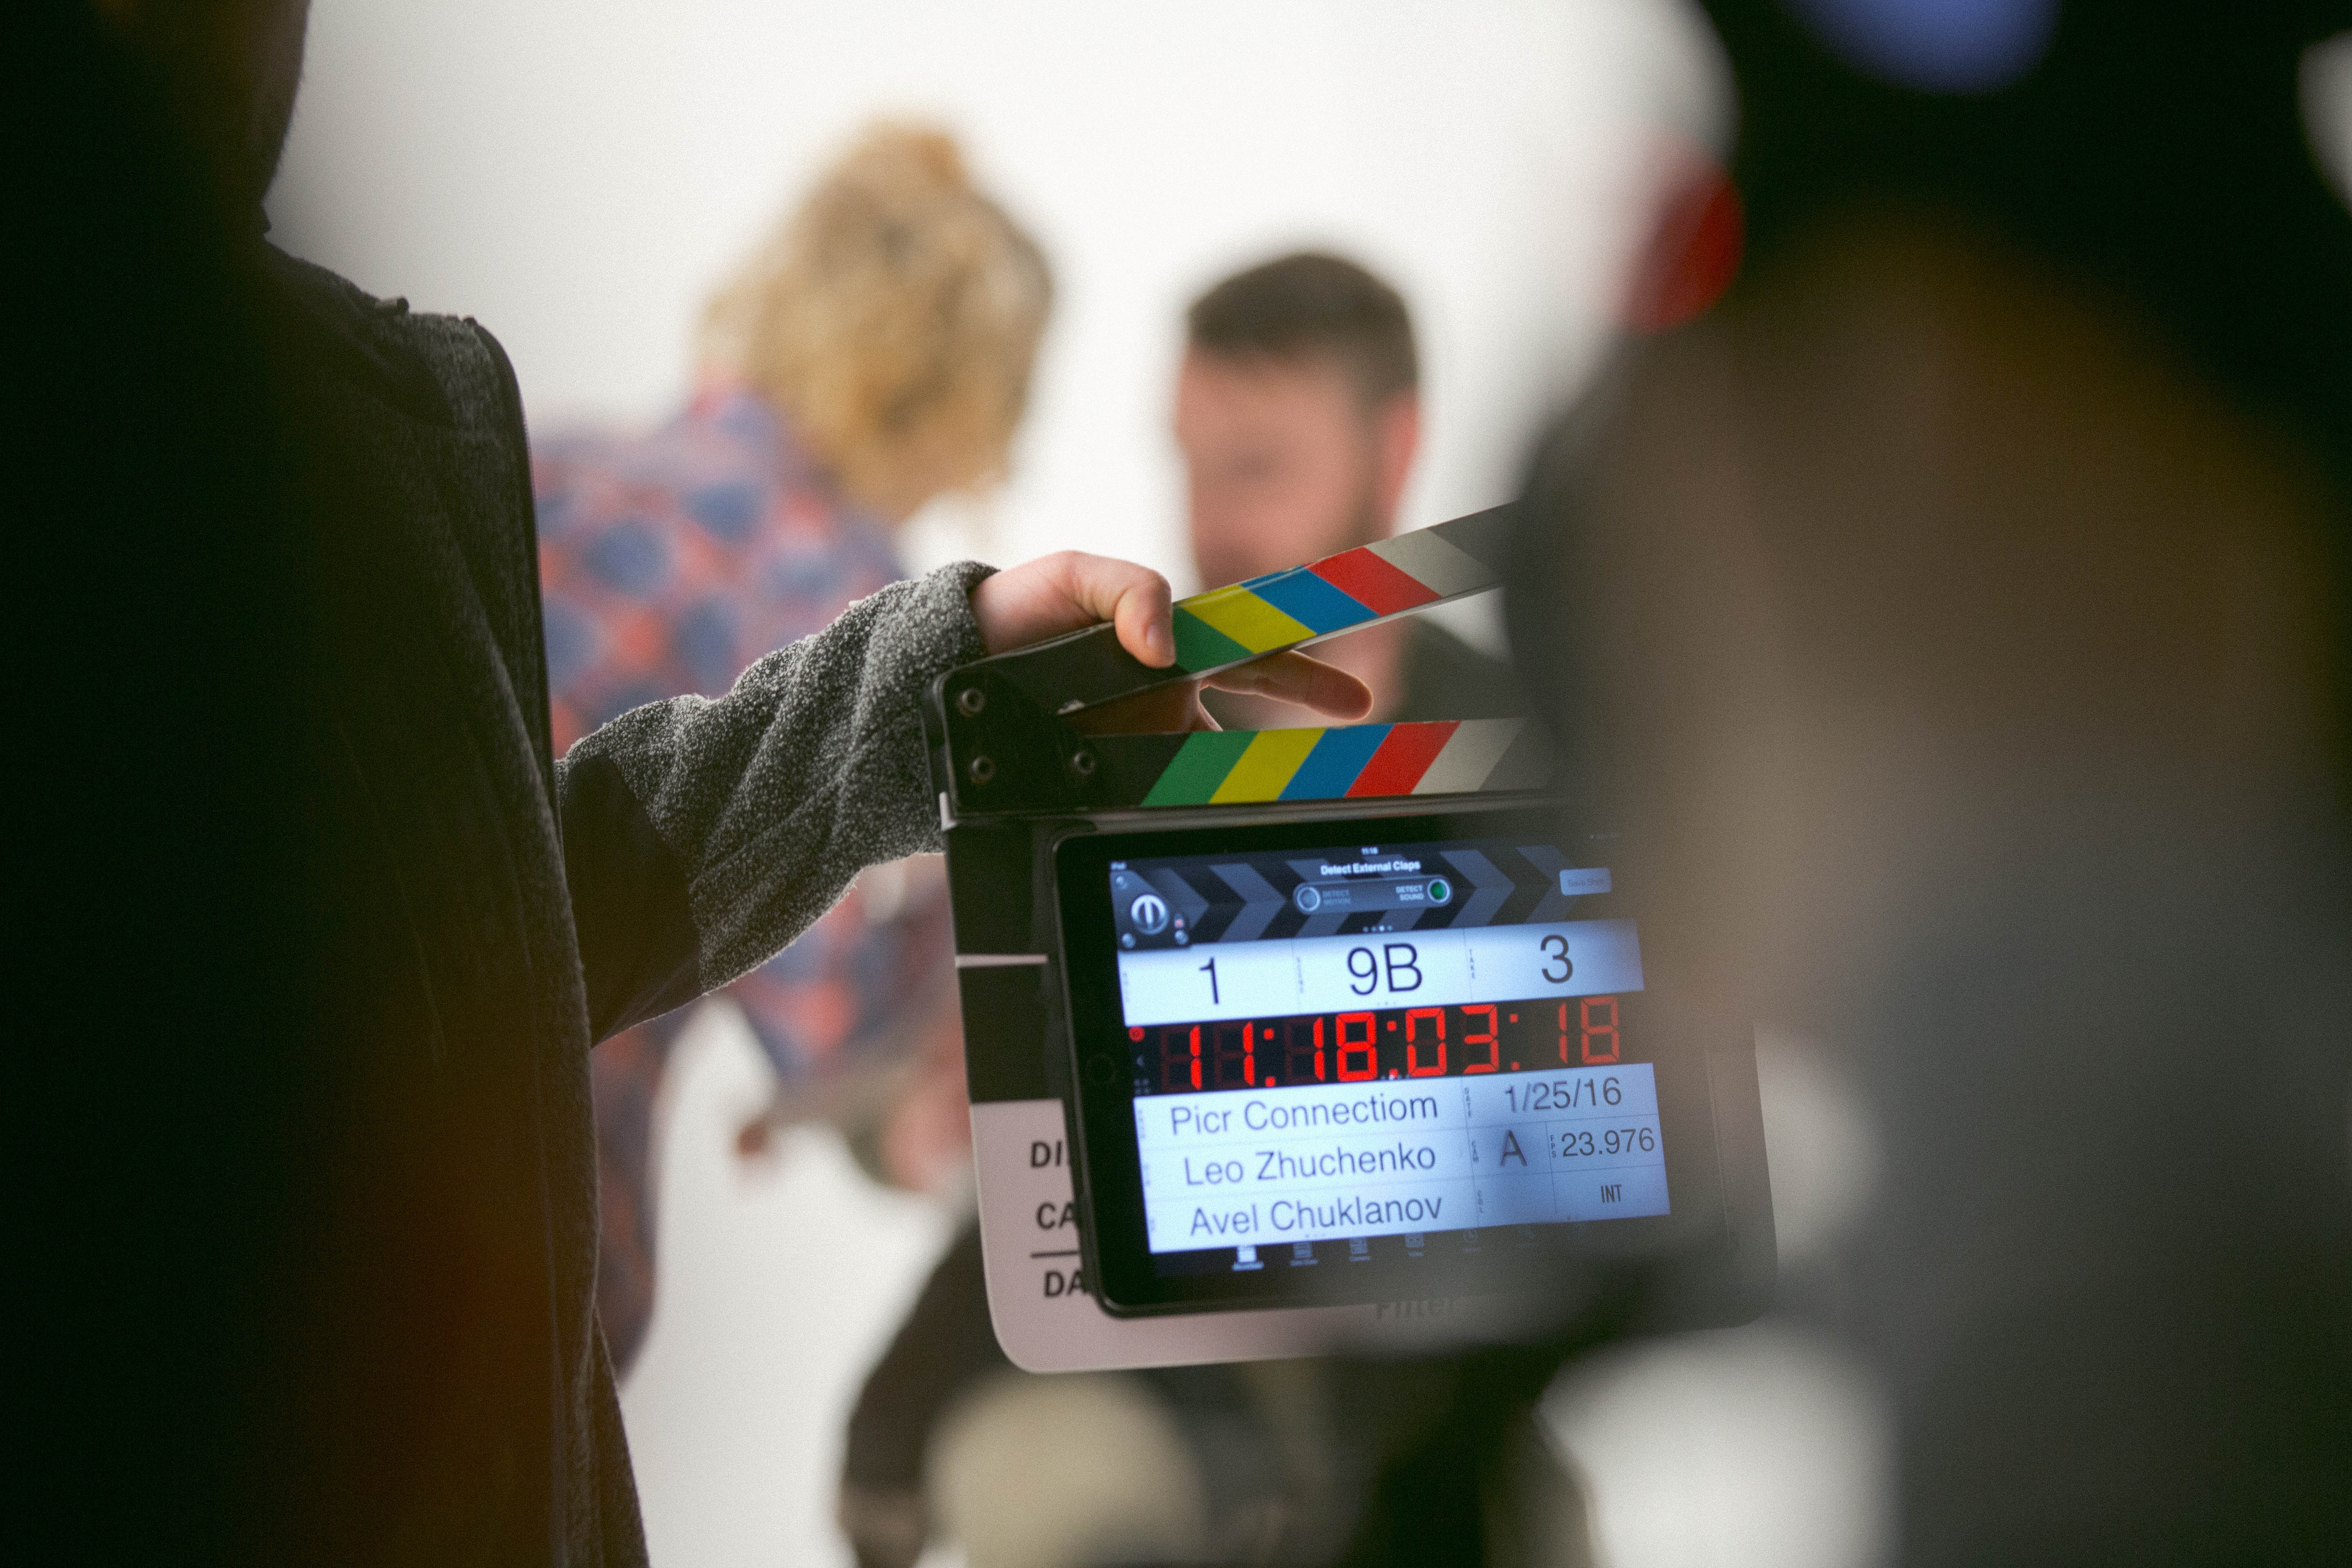 Revolutionising the Industry: Women in Film and Television and its Fight for Gender Equality